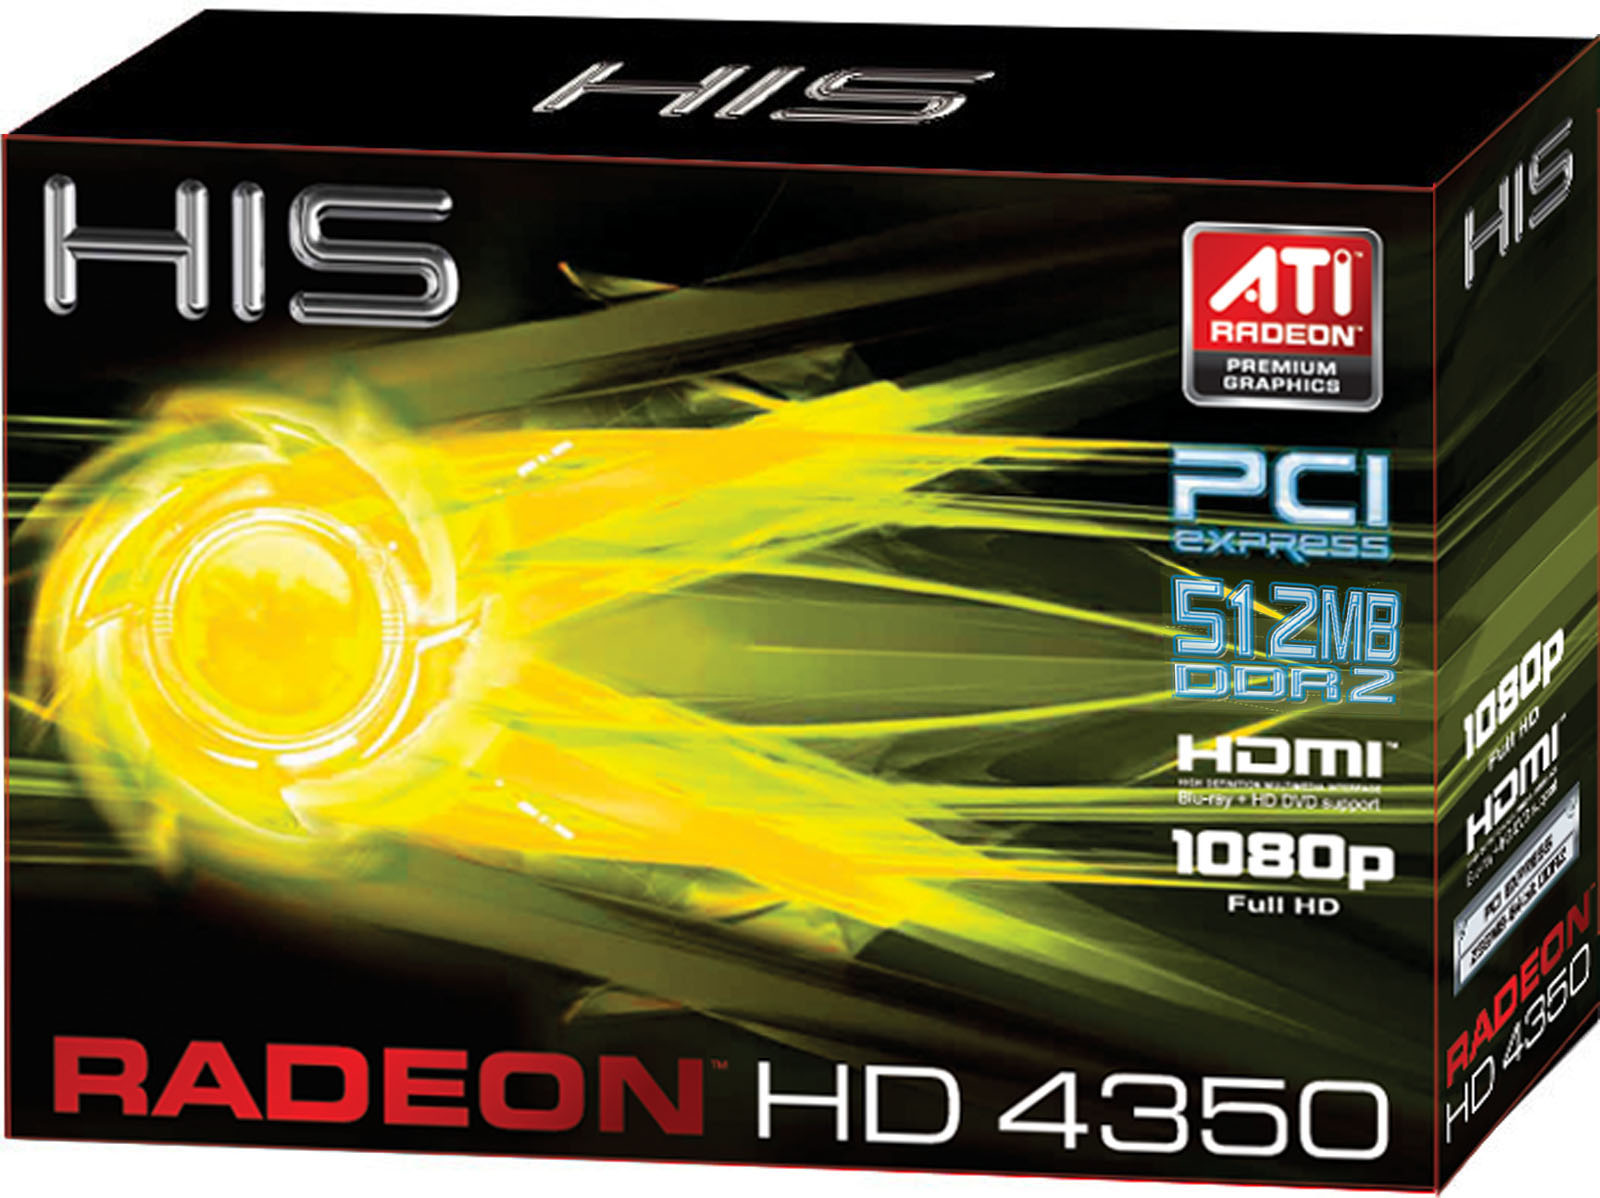 Radeon Graphics Hd 6650M Драйвера